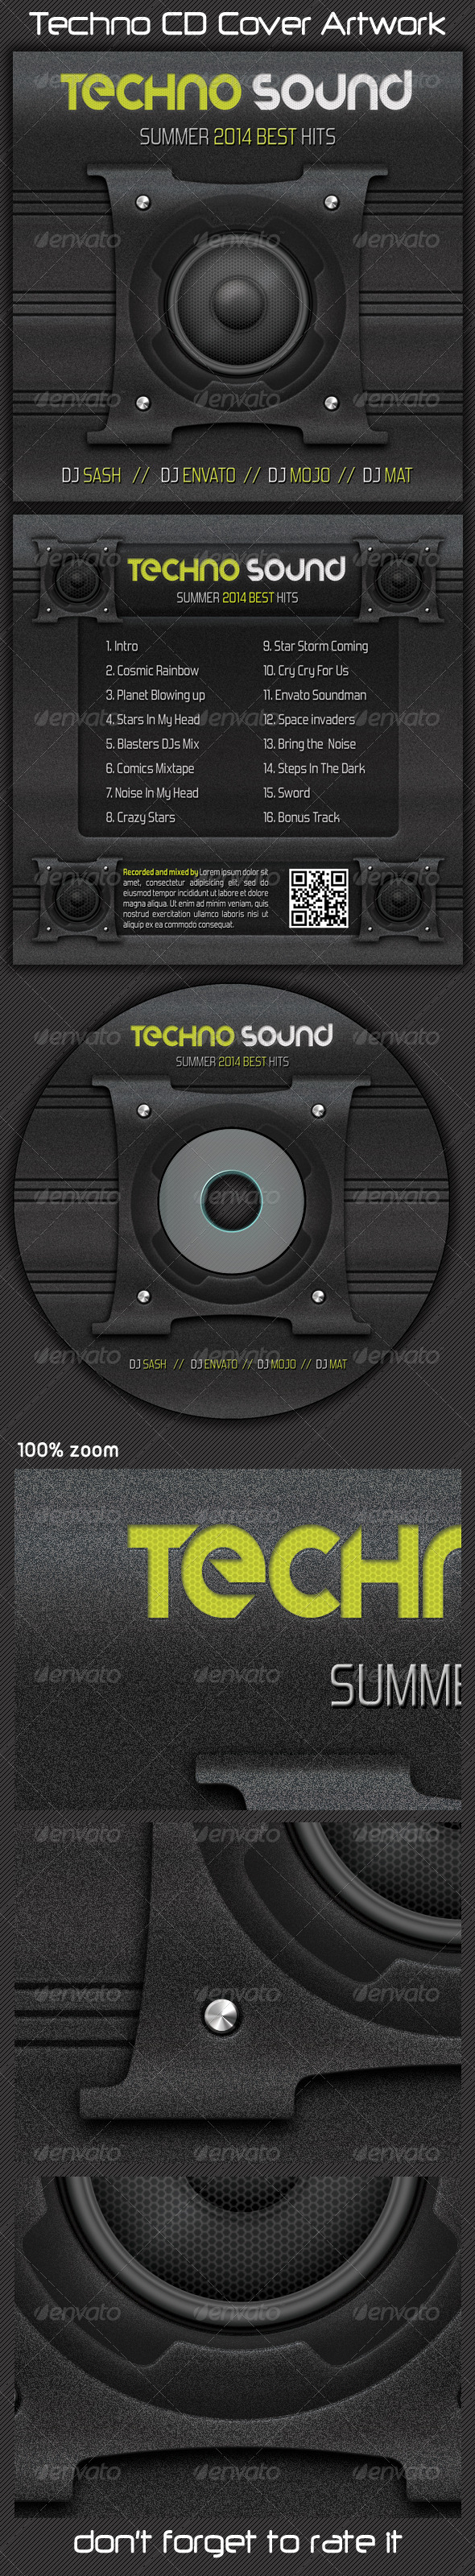 GraphicRiver Techno CD Cover Artwork 5456880